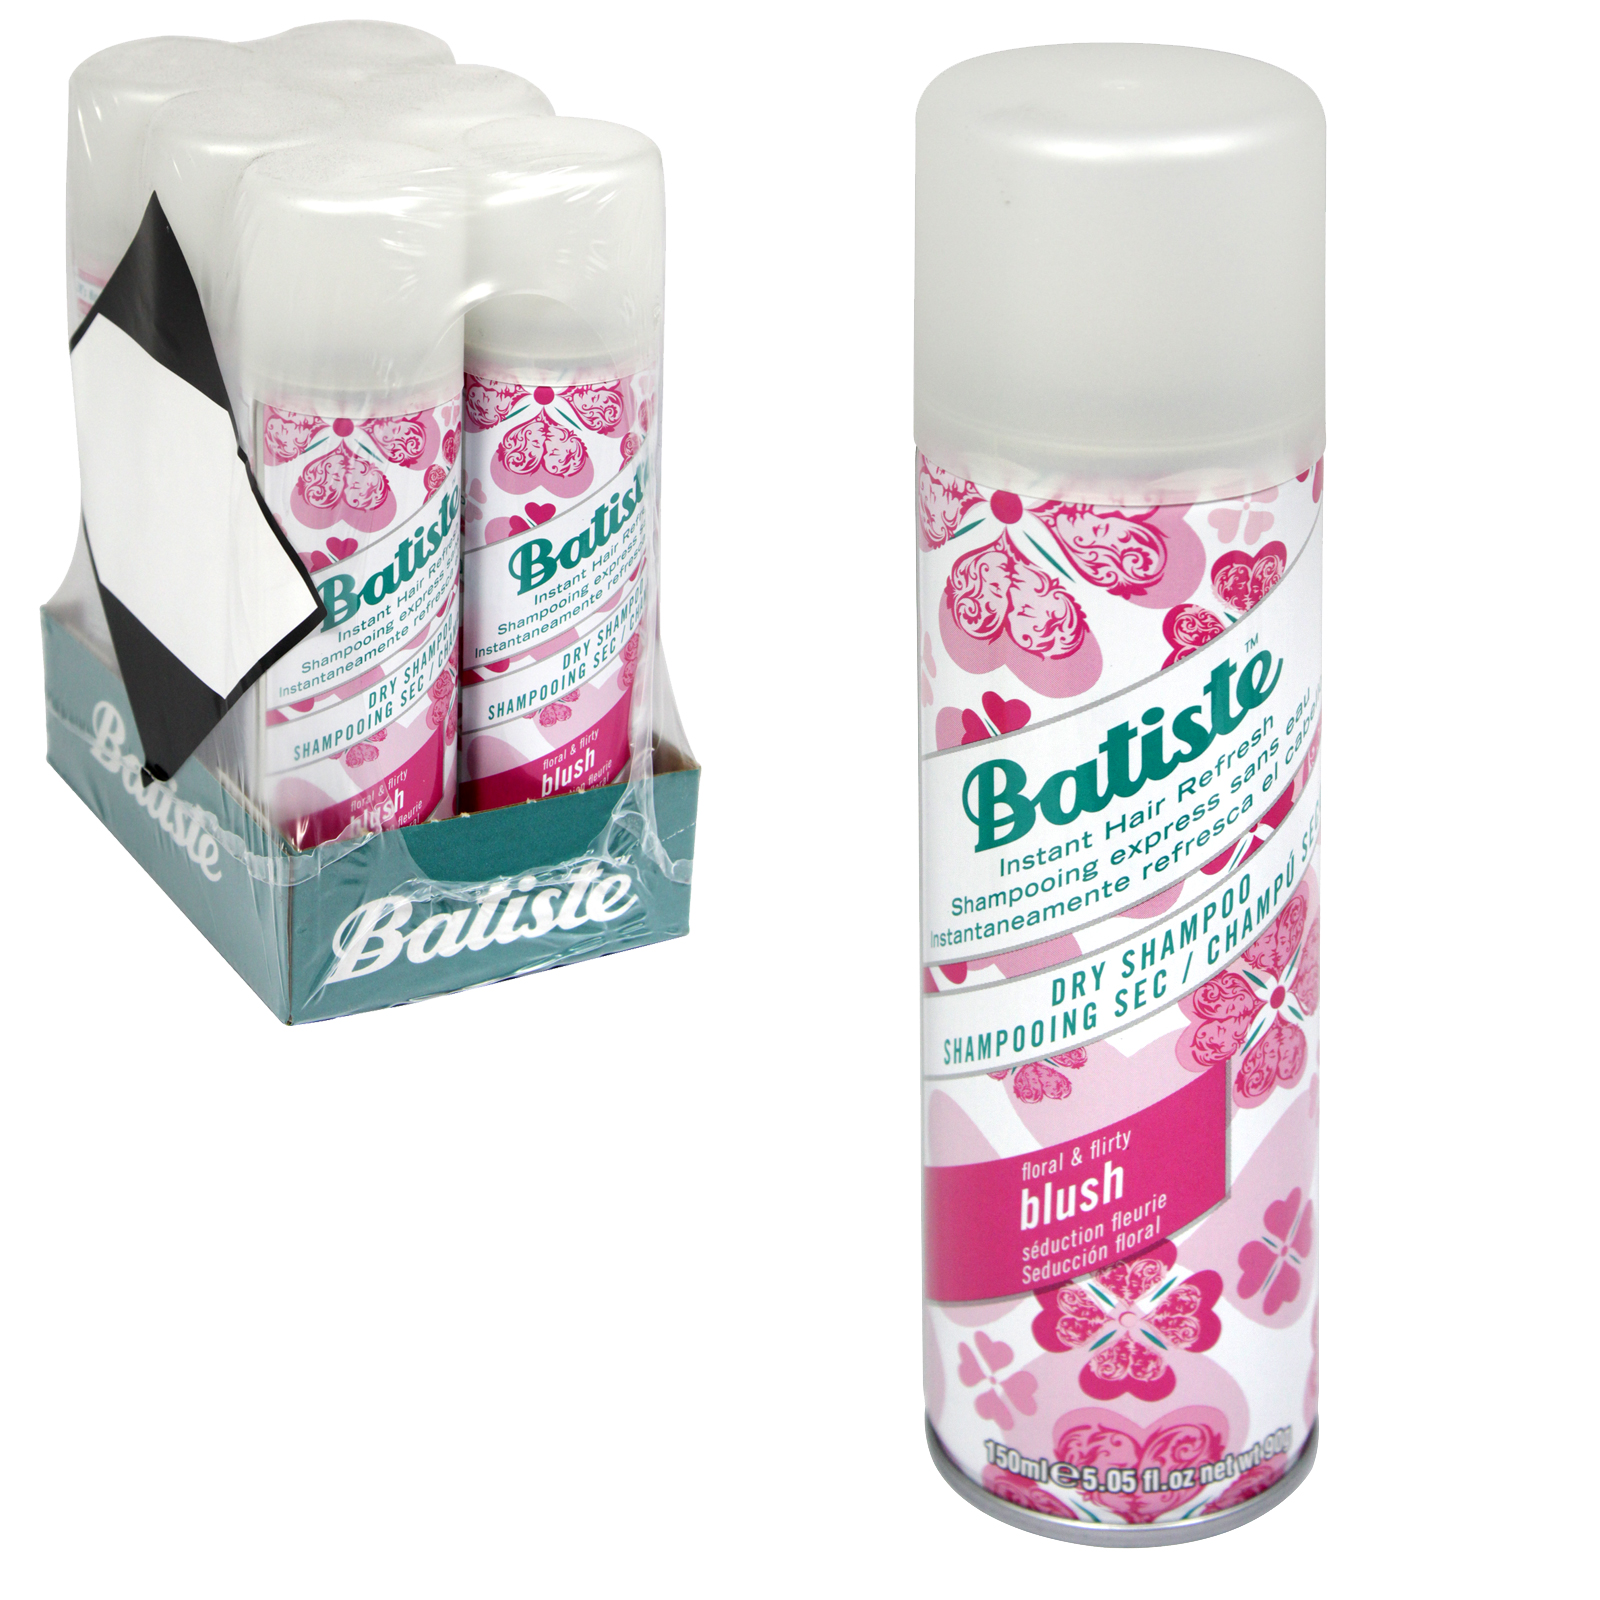 BATISTE DRY SHAMPOO 150ML BLUSH X6